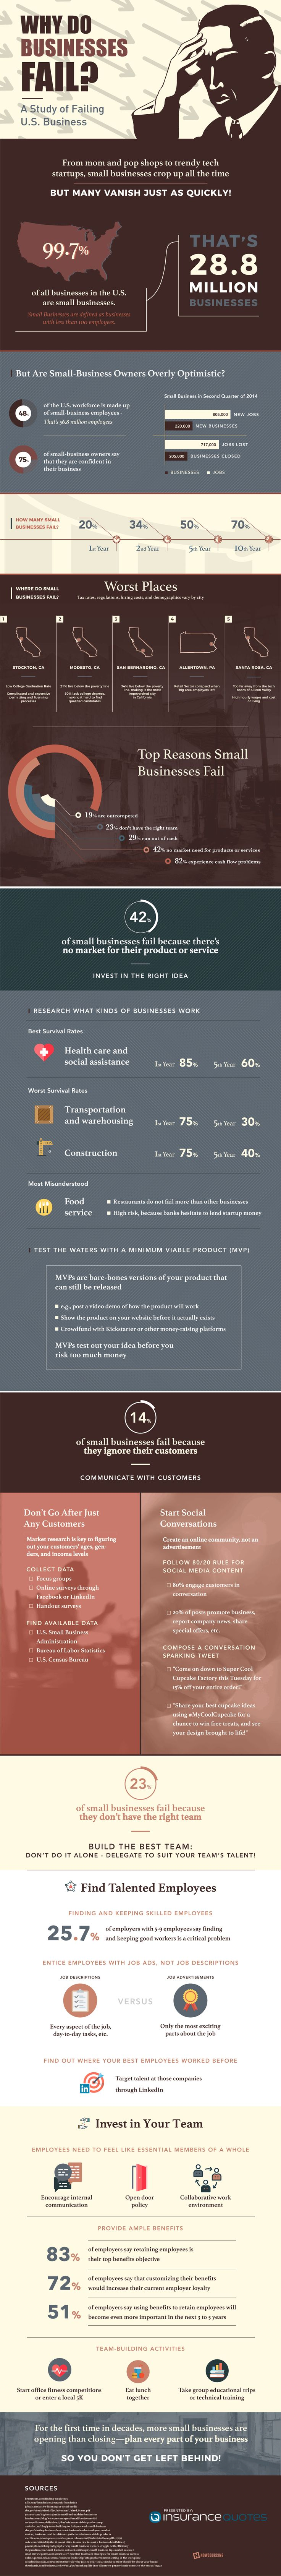 Why Do Businesses Fail? infographic